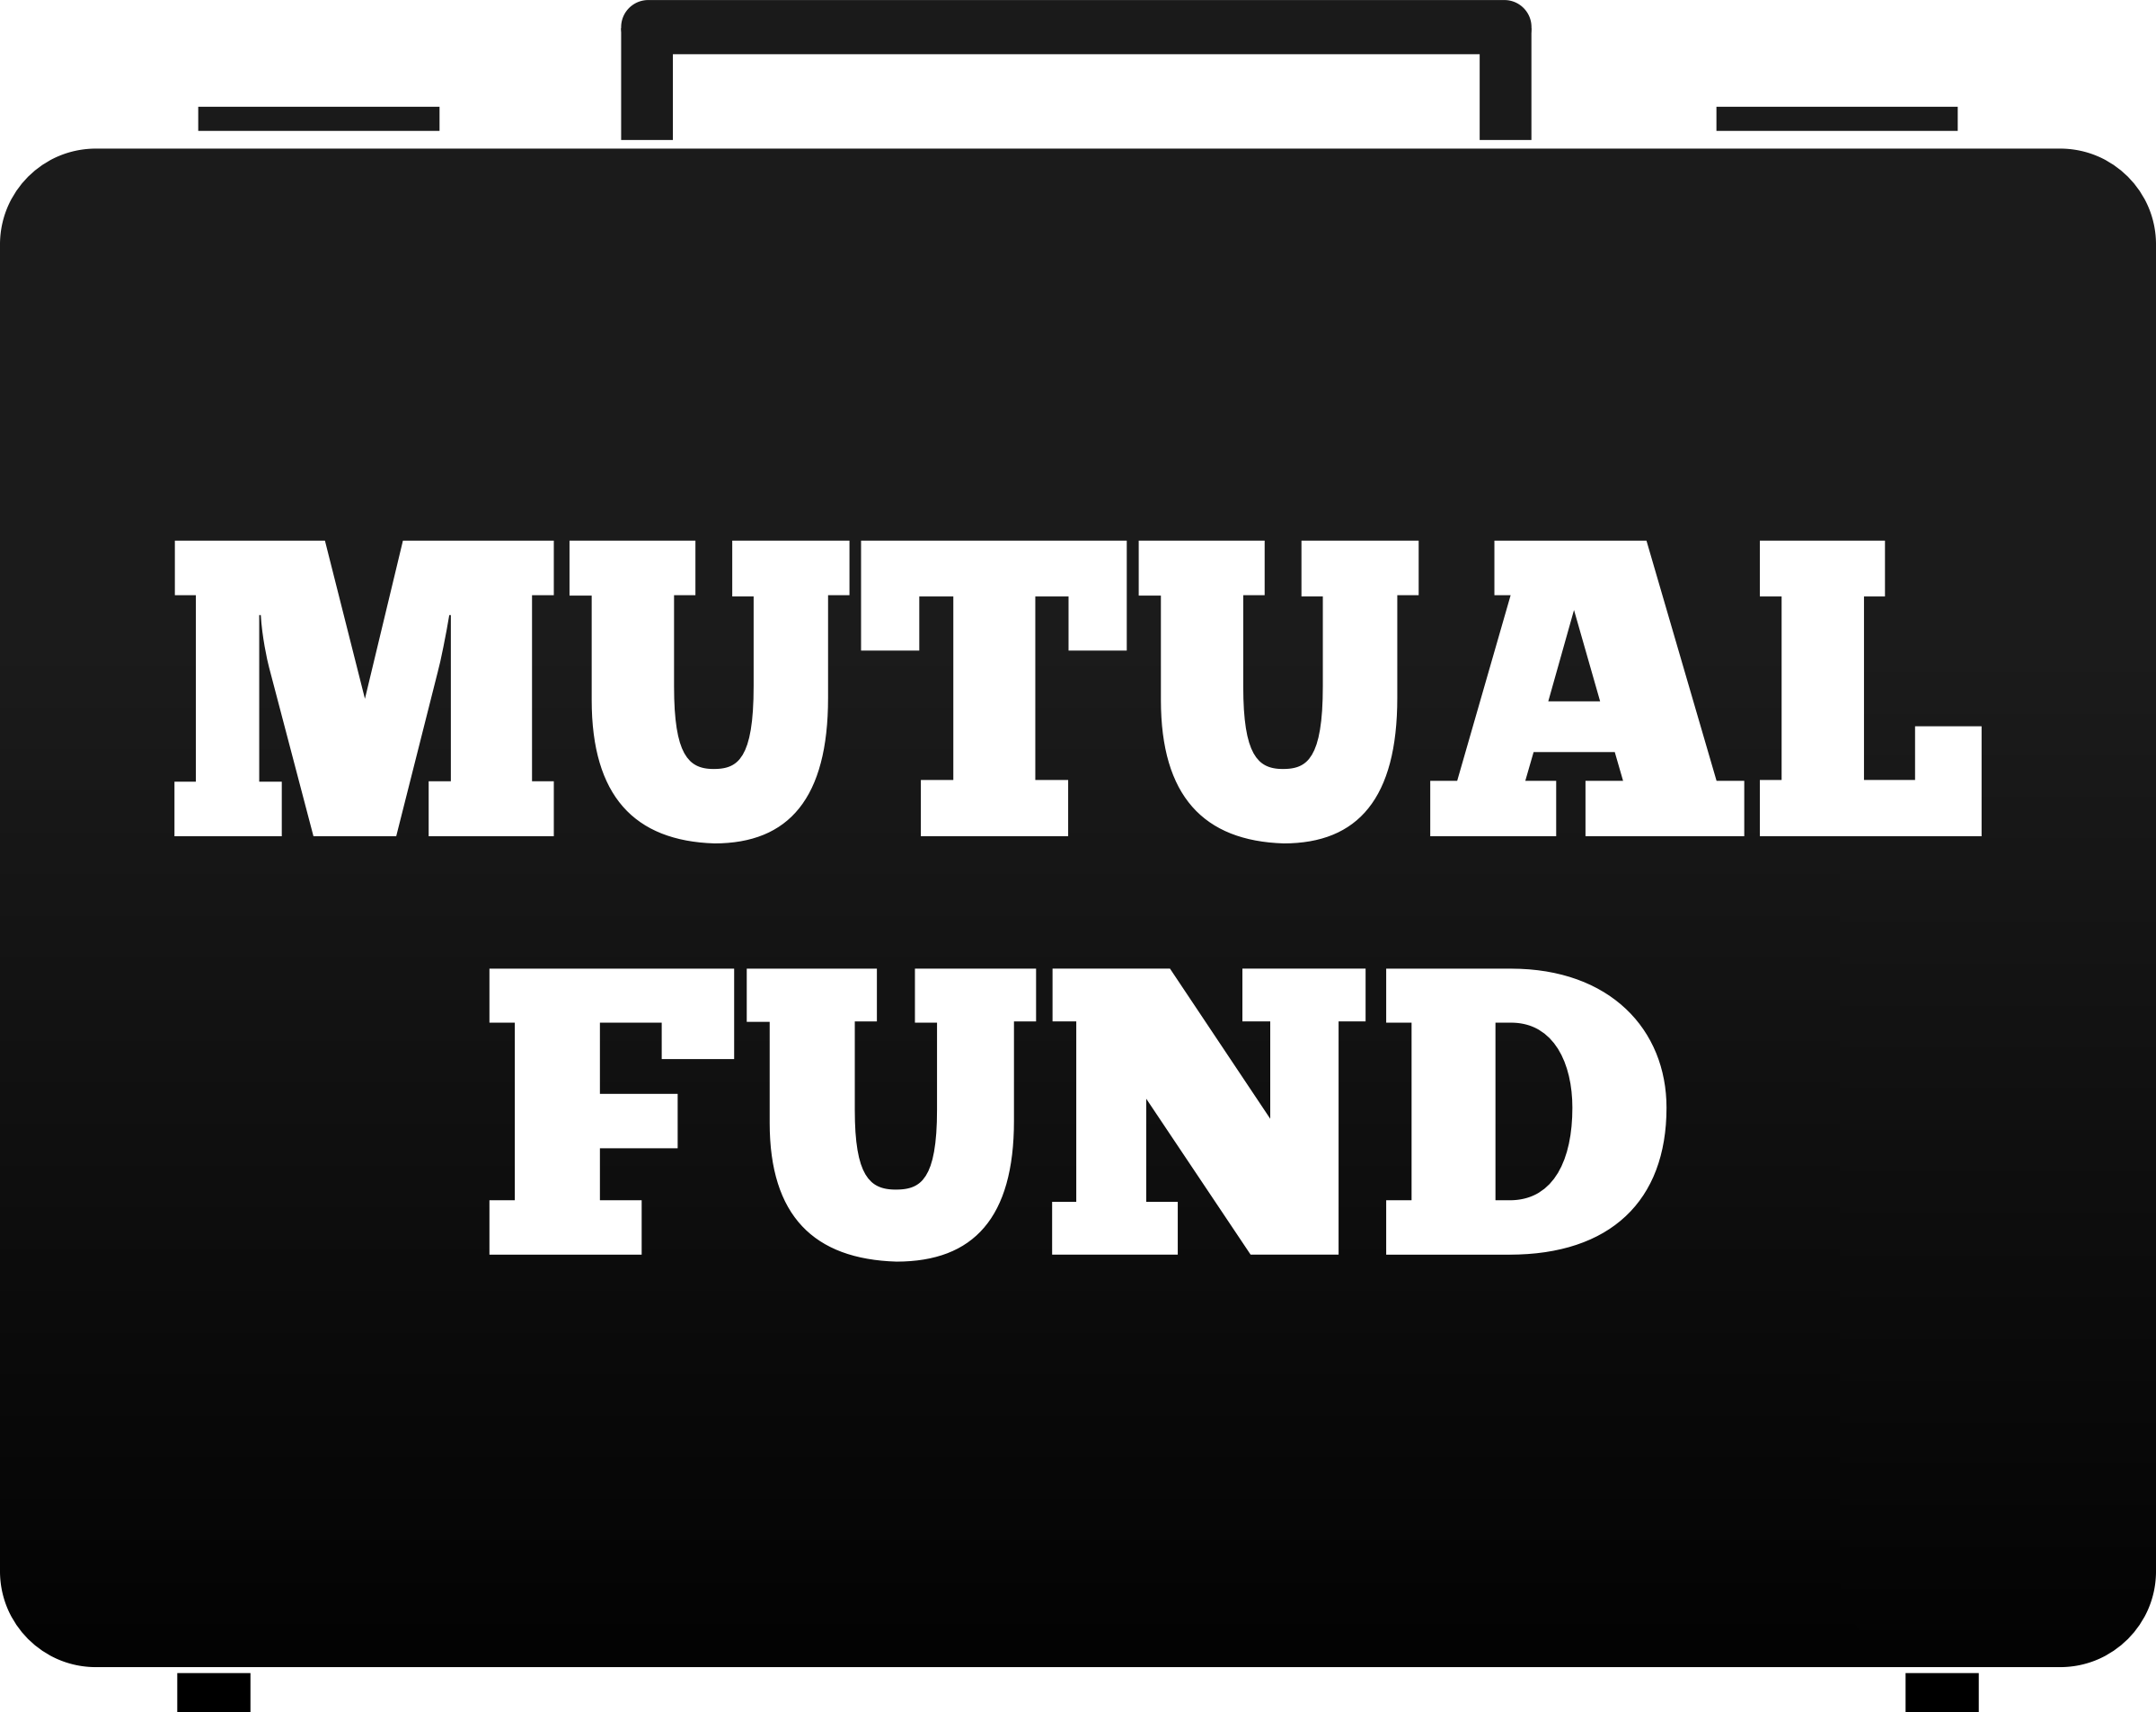 Mutual Fund by Alastair